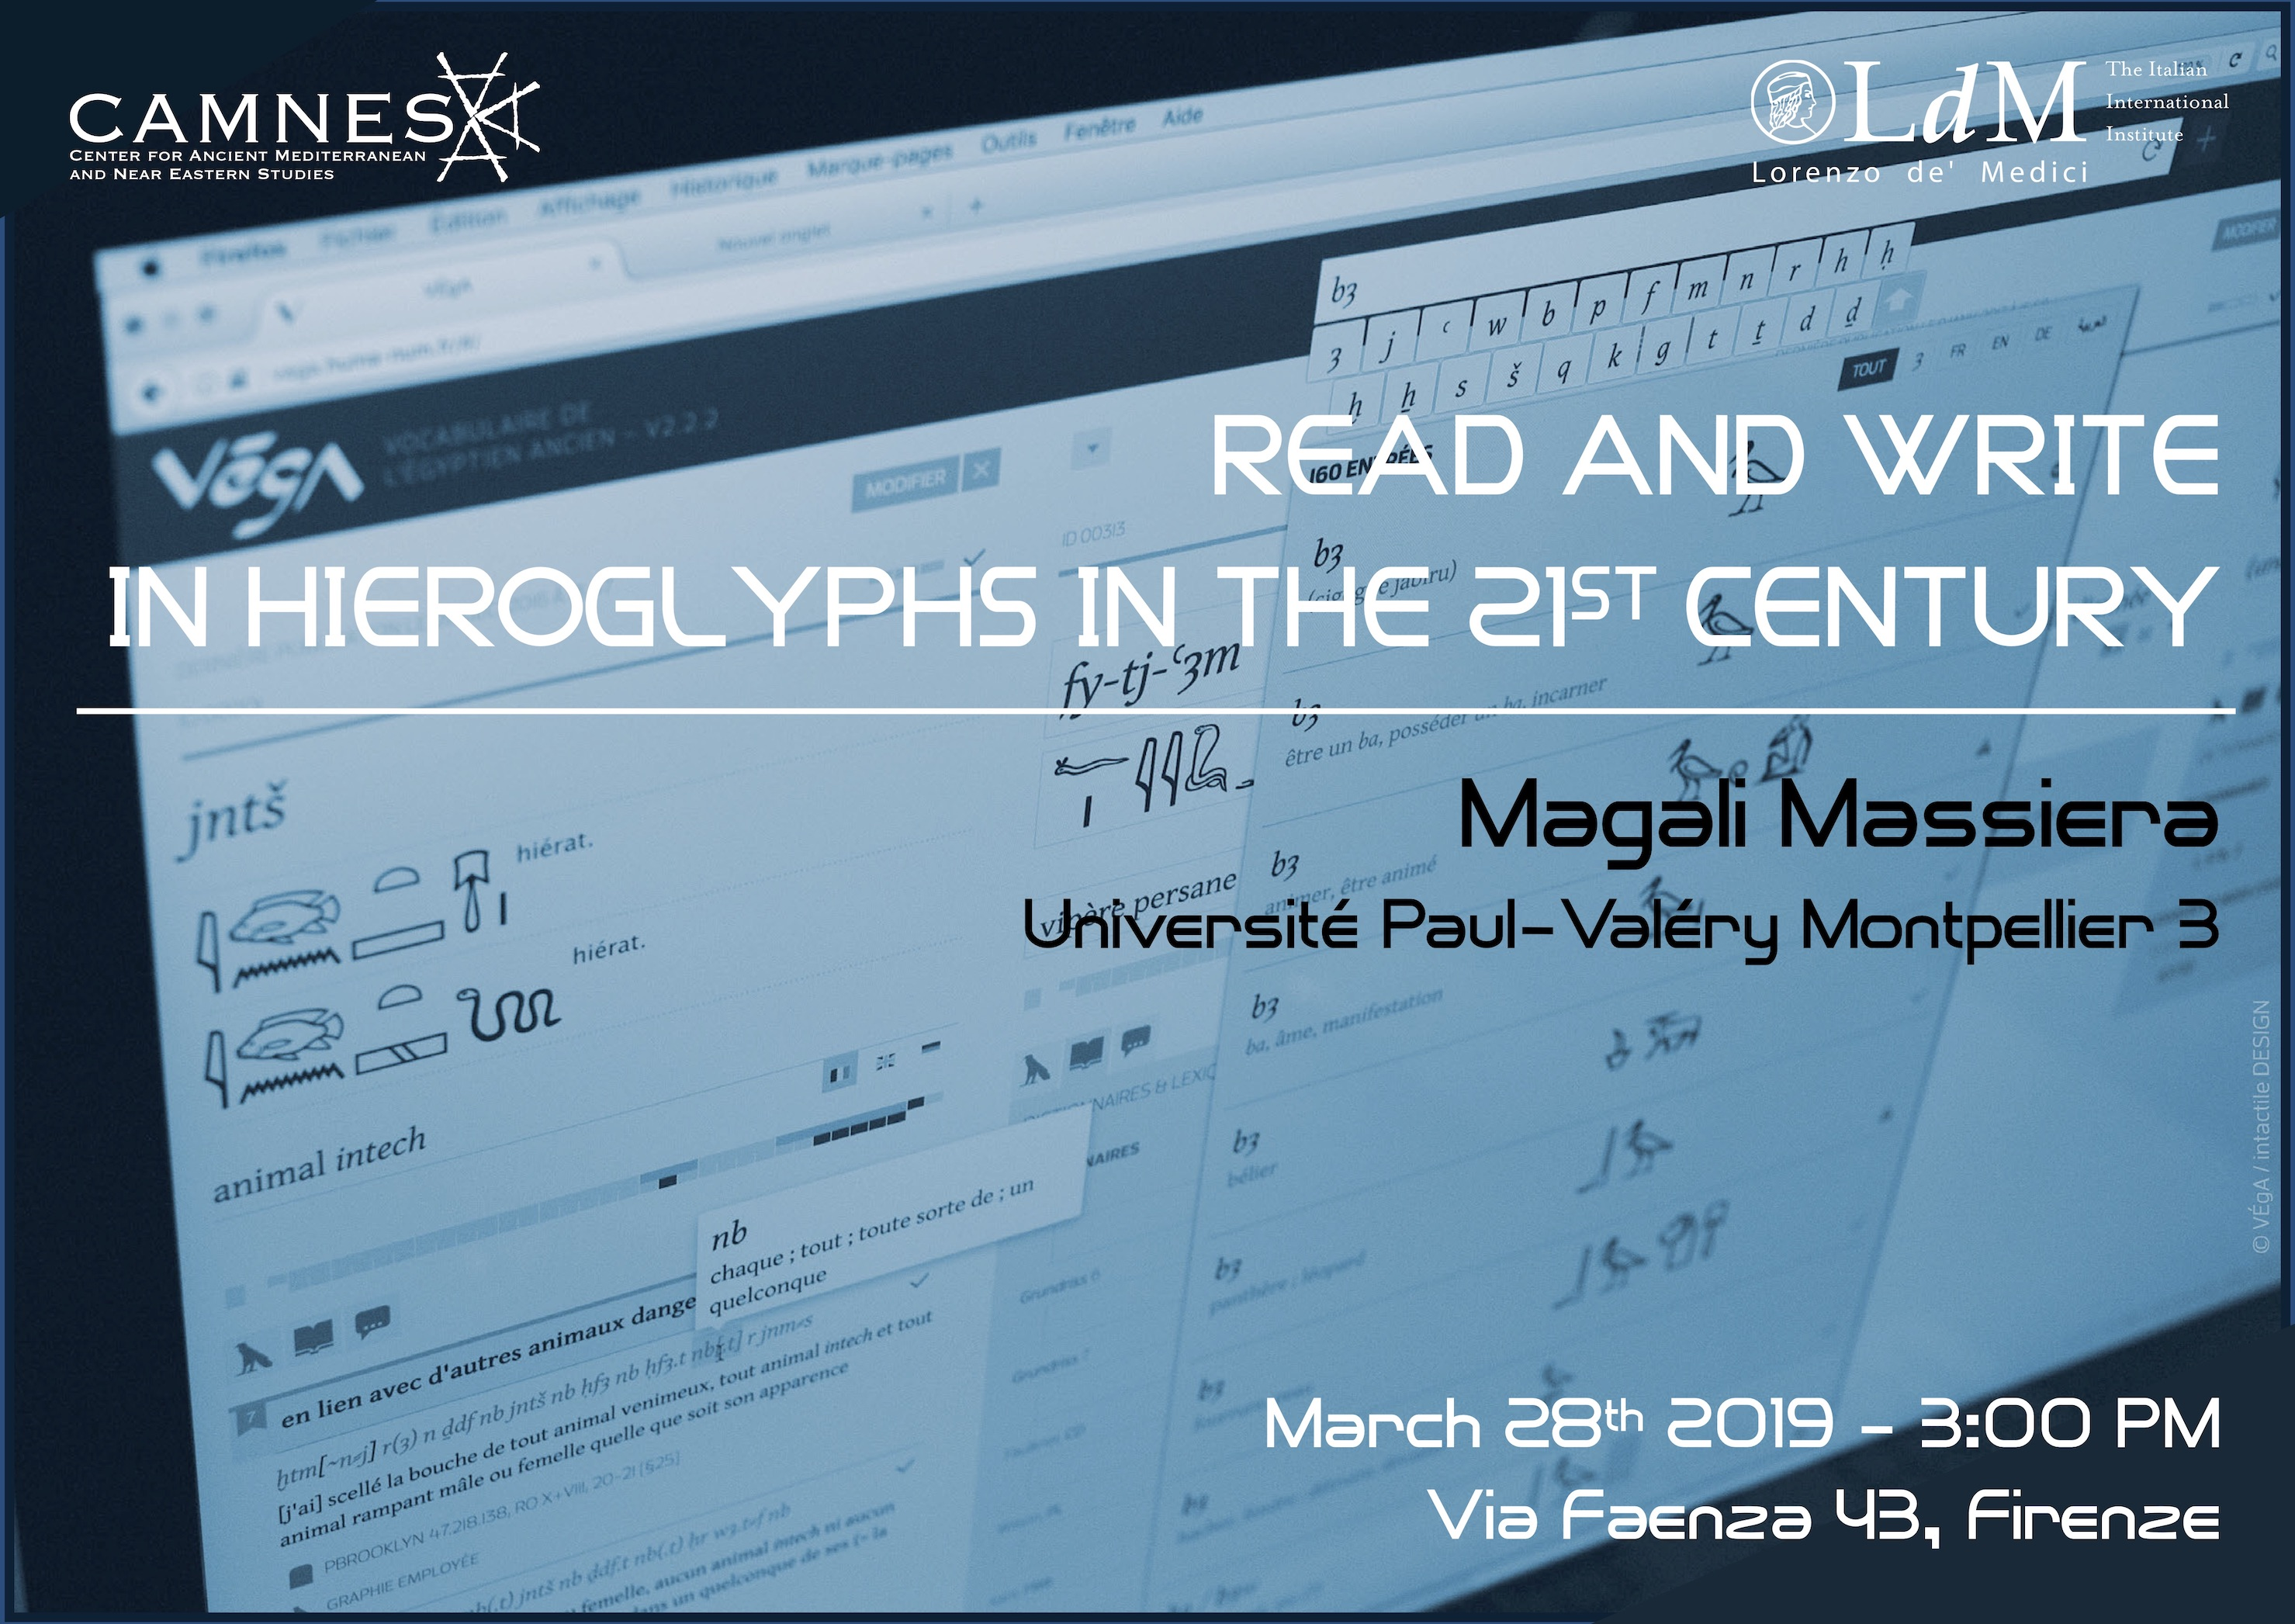 CONFERENZA: Read & write in Hieroglyphs the 21ST Century